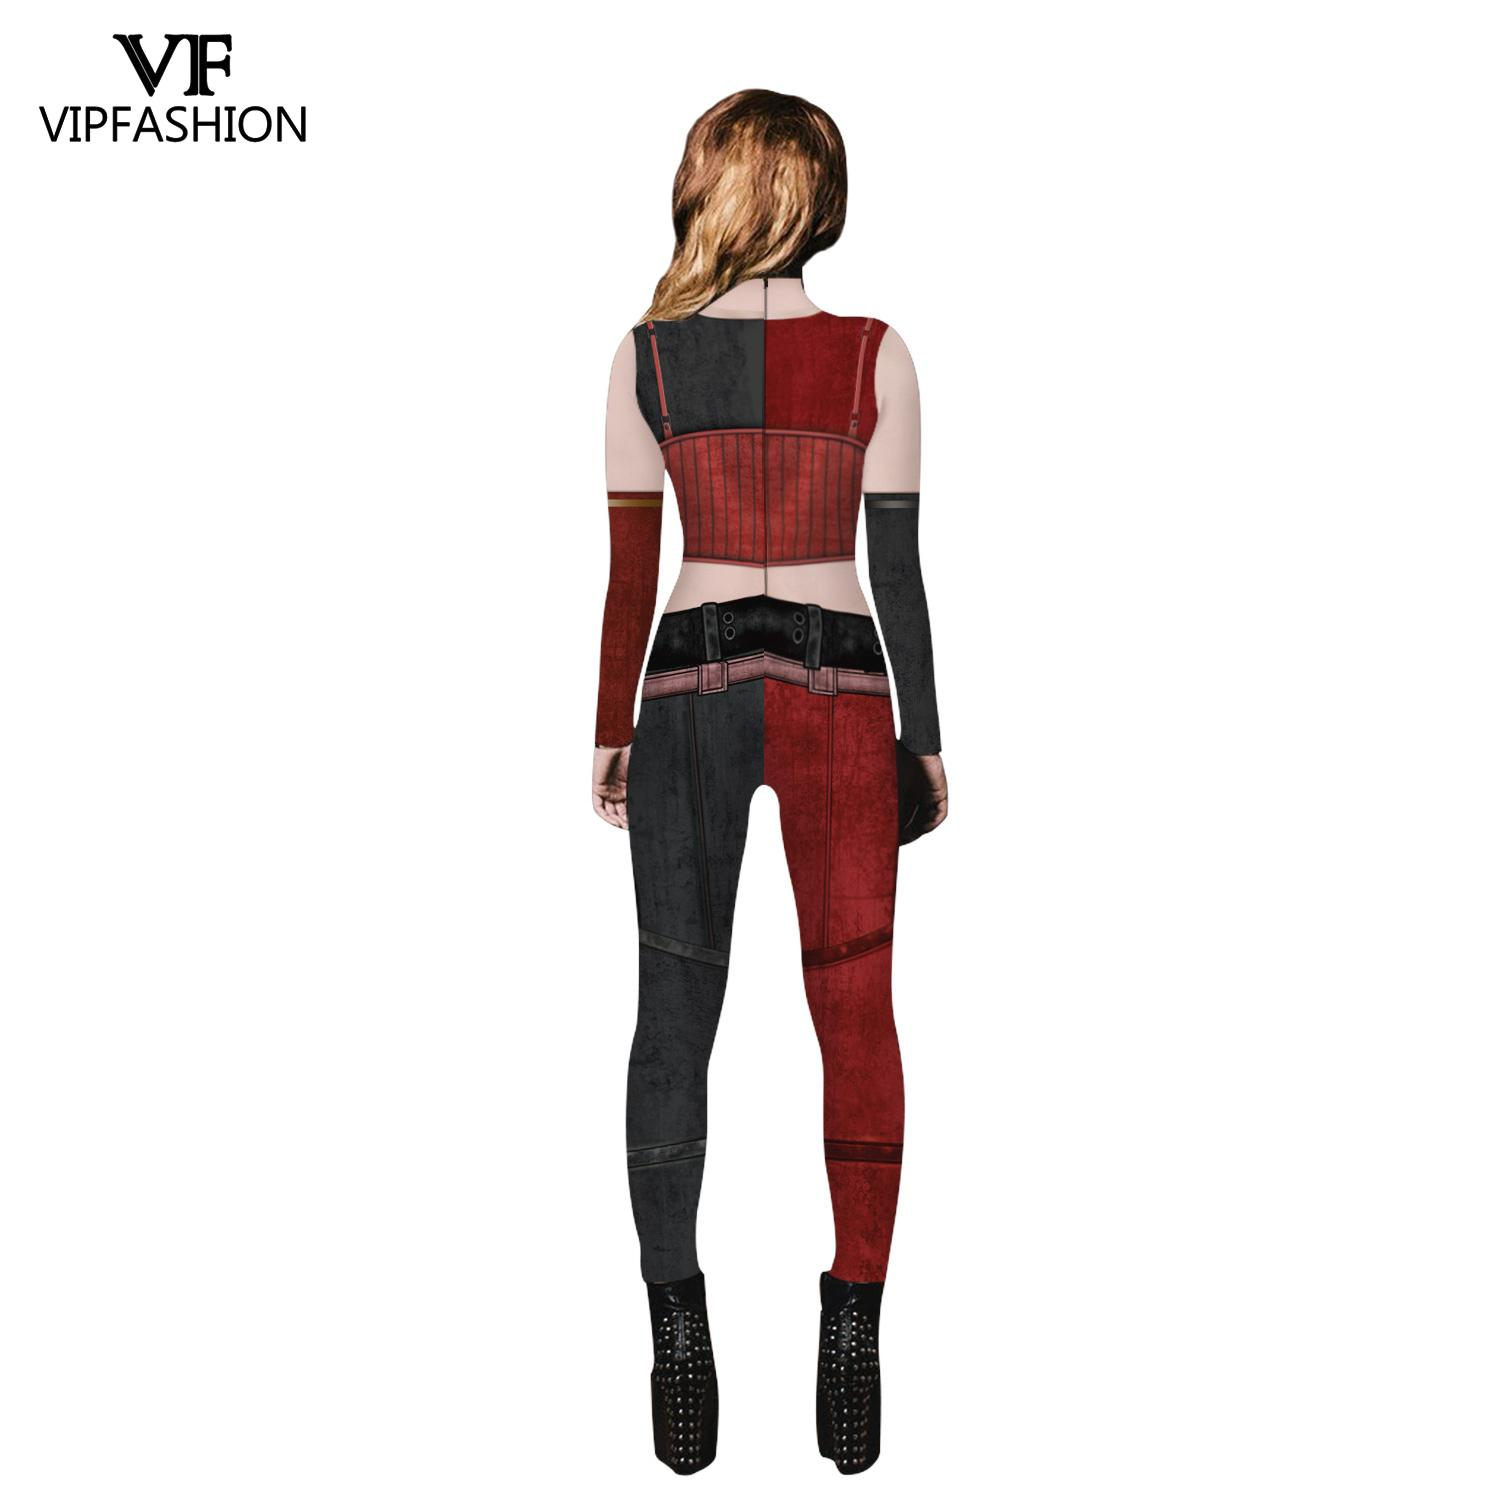 VIP FASHION New Movie Suicide Squad Harley Quinn Cosplay Printed Lycra Zentai Joker Fancy Jumpsuit Halloween Costumes For Women in Holidays Costumes from Novelty Special Use